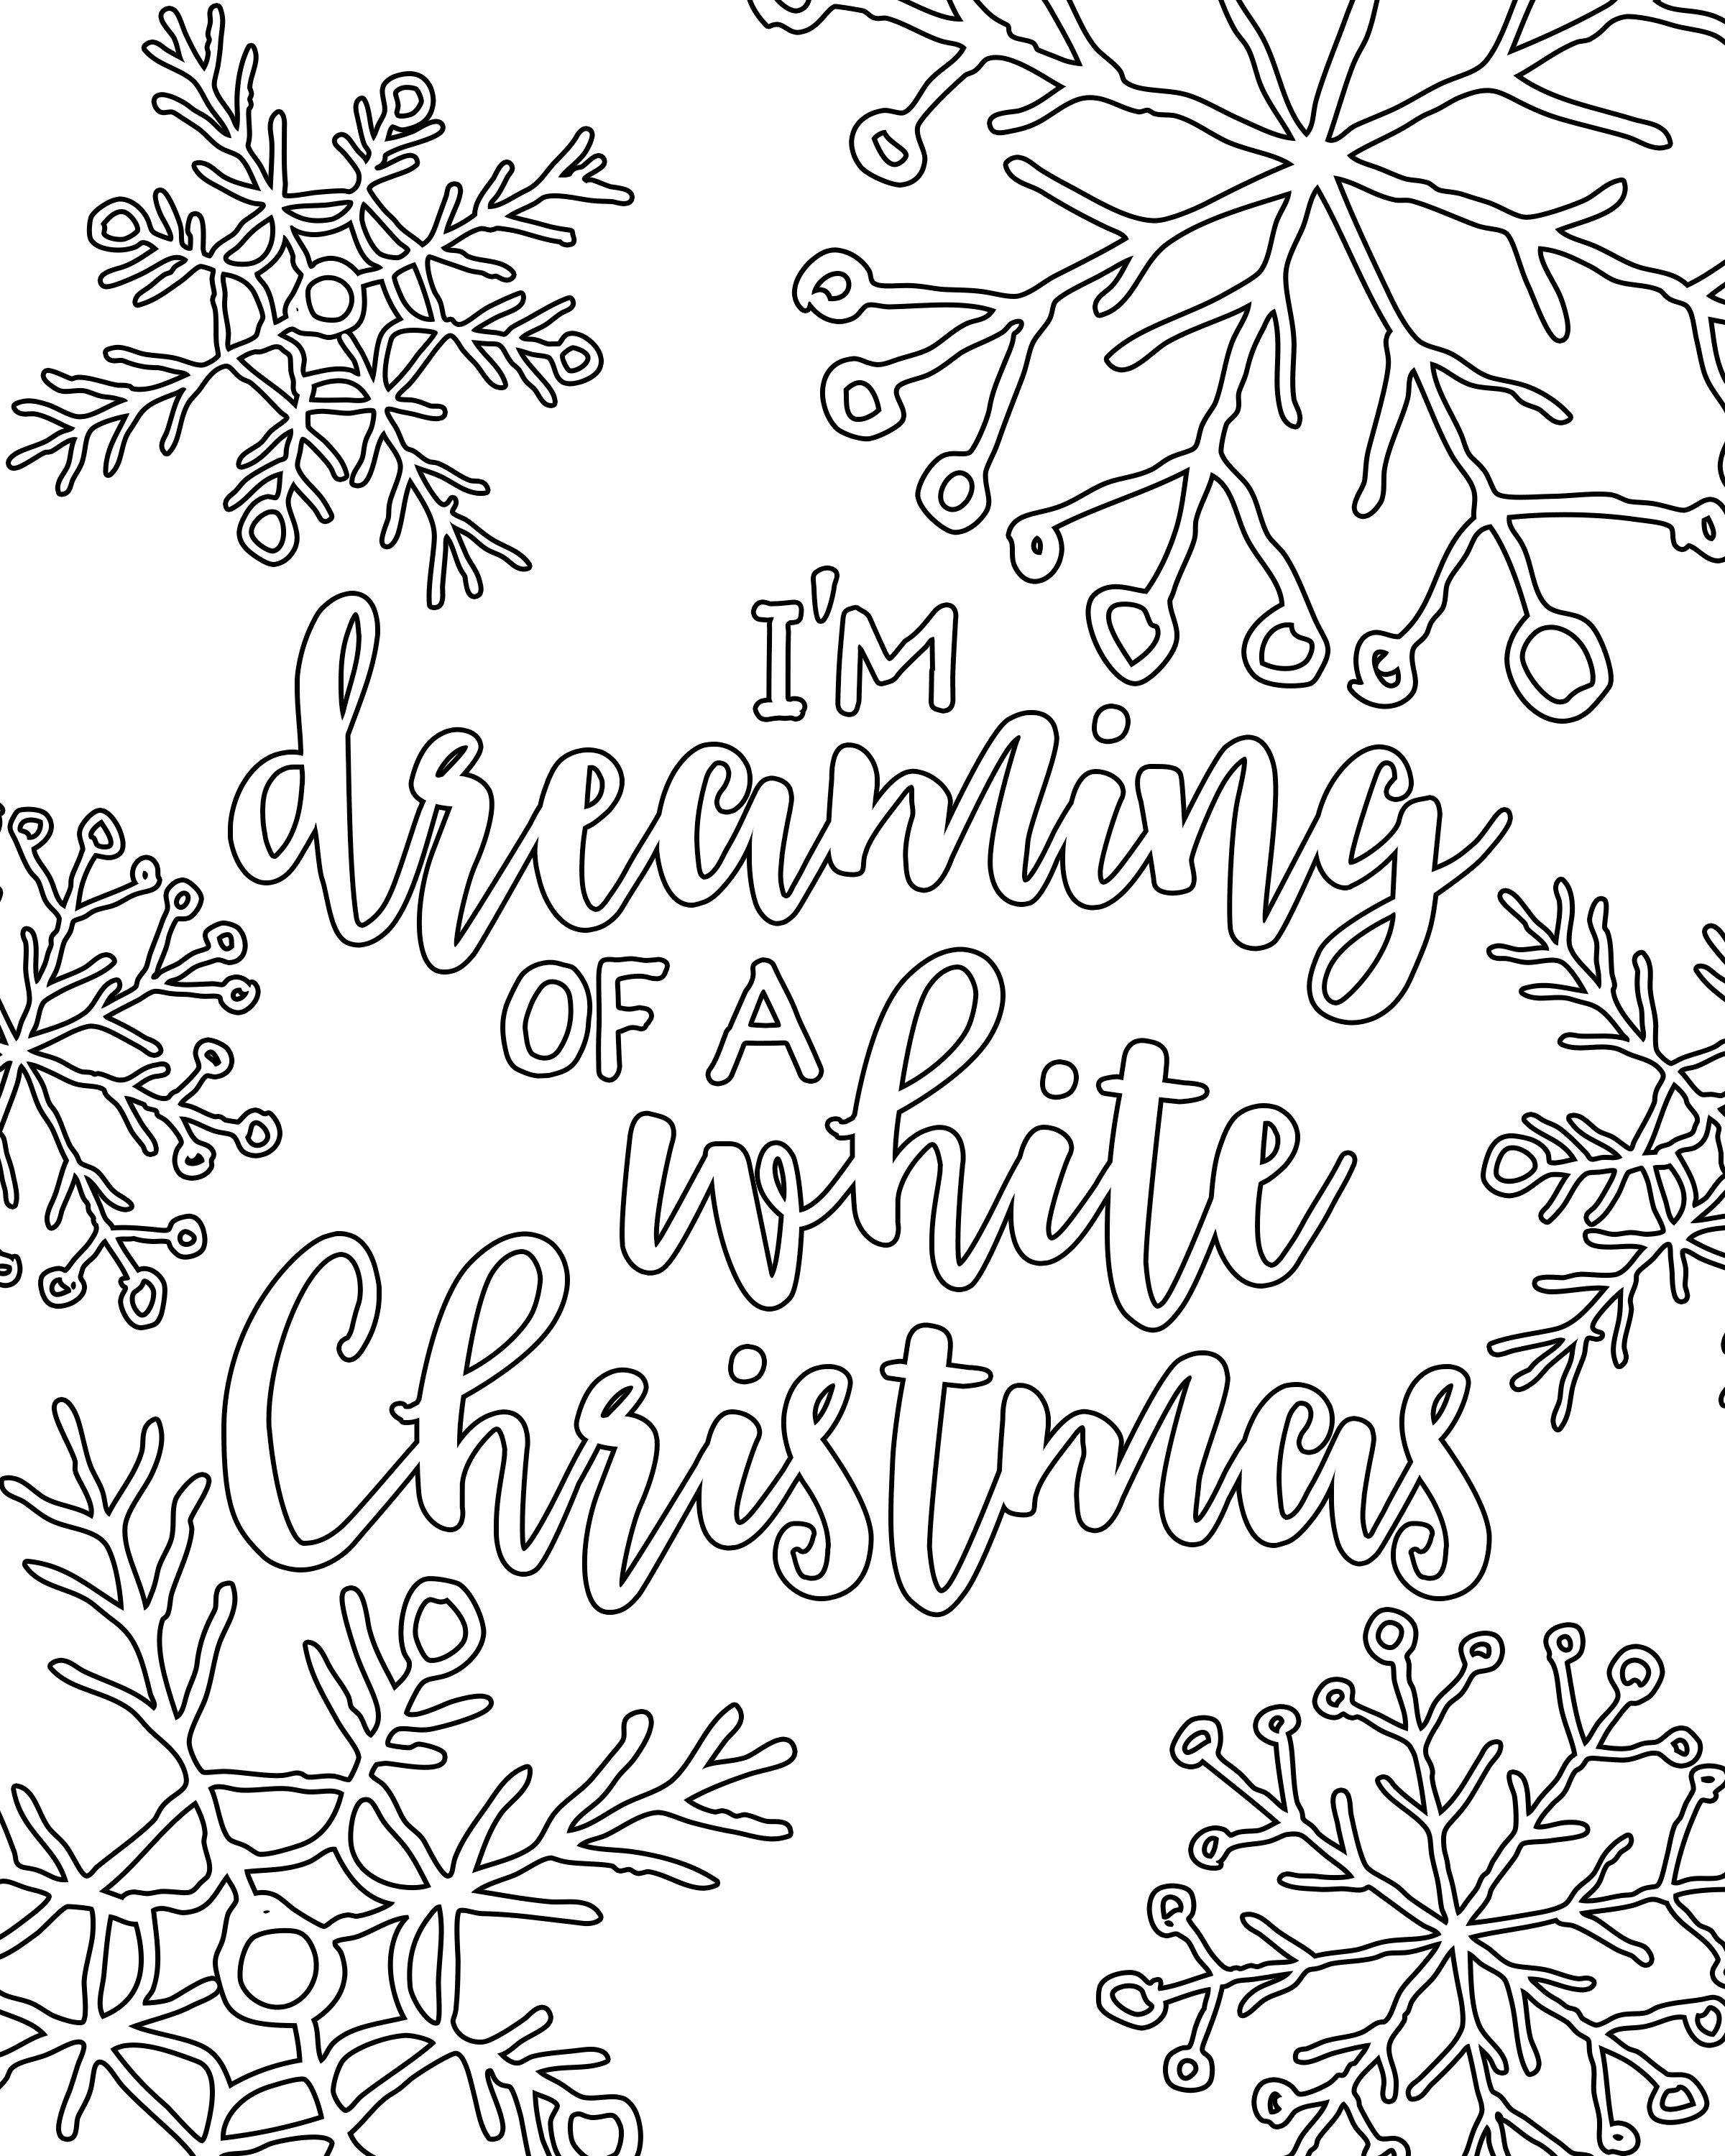 download the white christmas coloring page